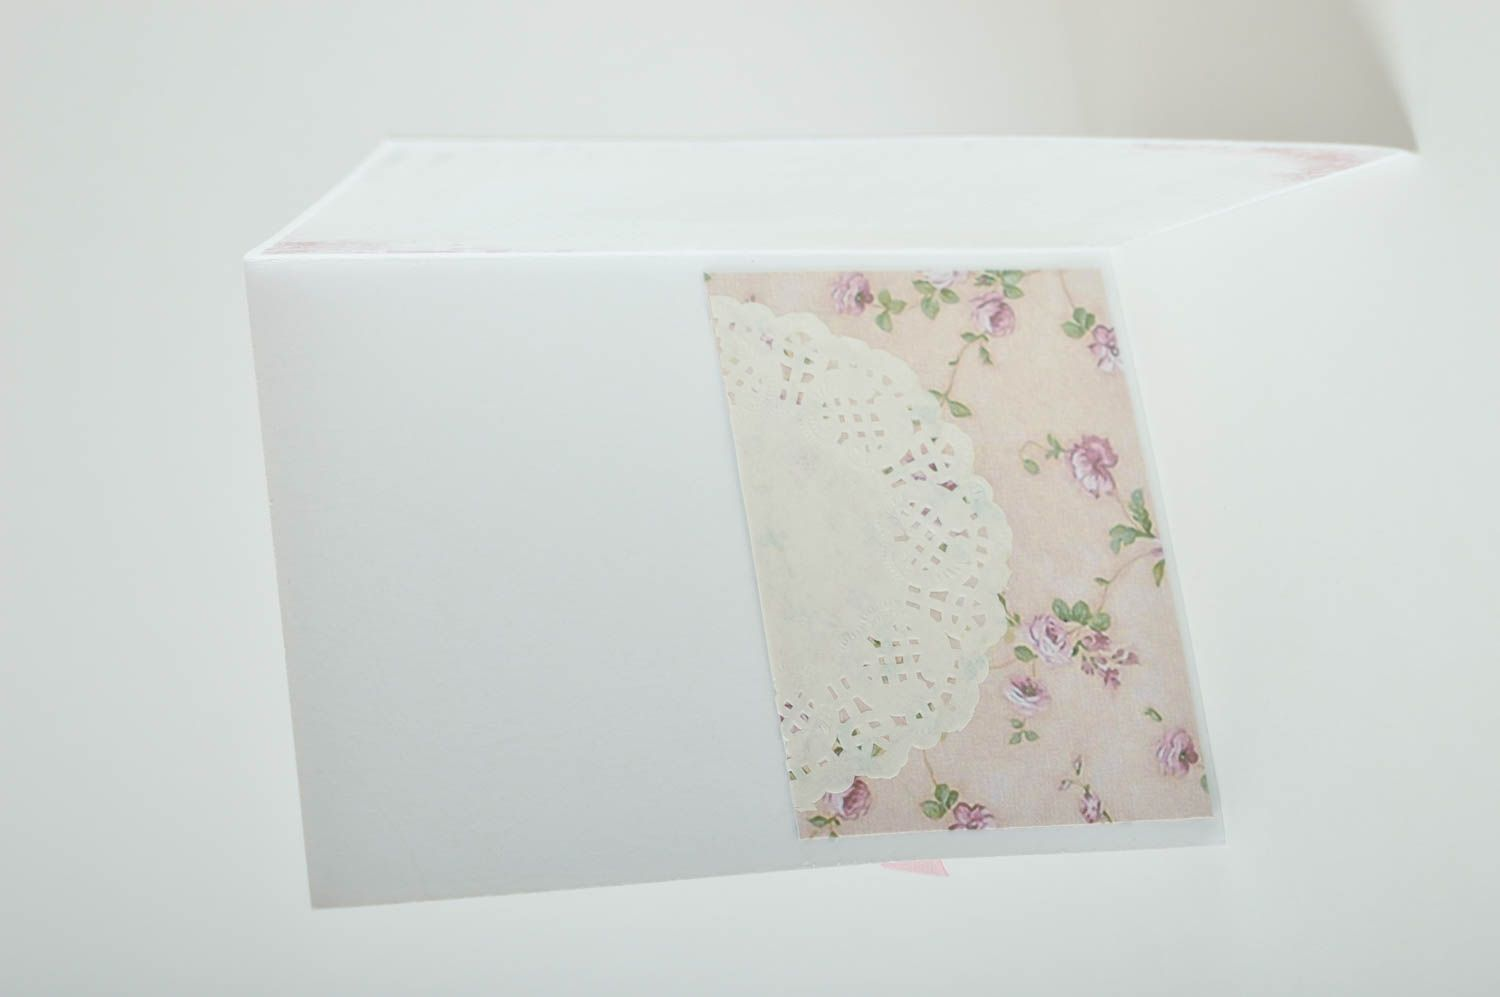 Handmade gifts greeting card thank you card souvenir ideas gifts for girls photo 3